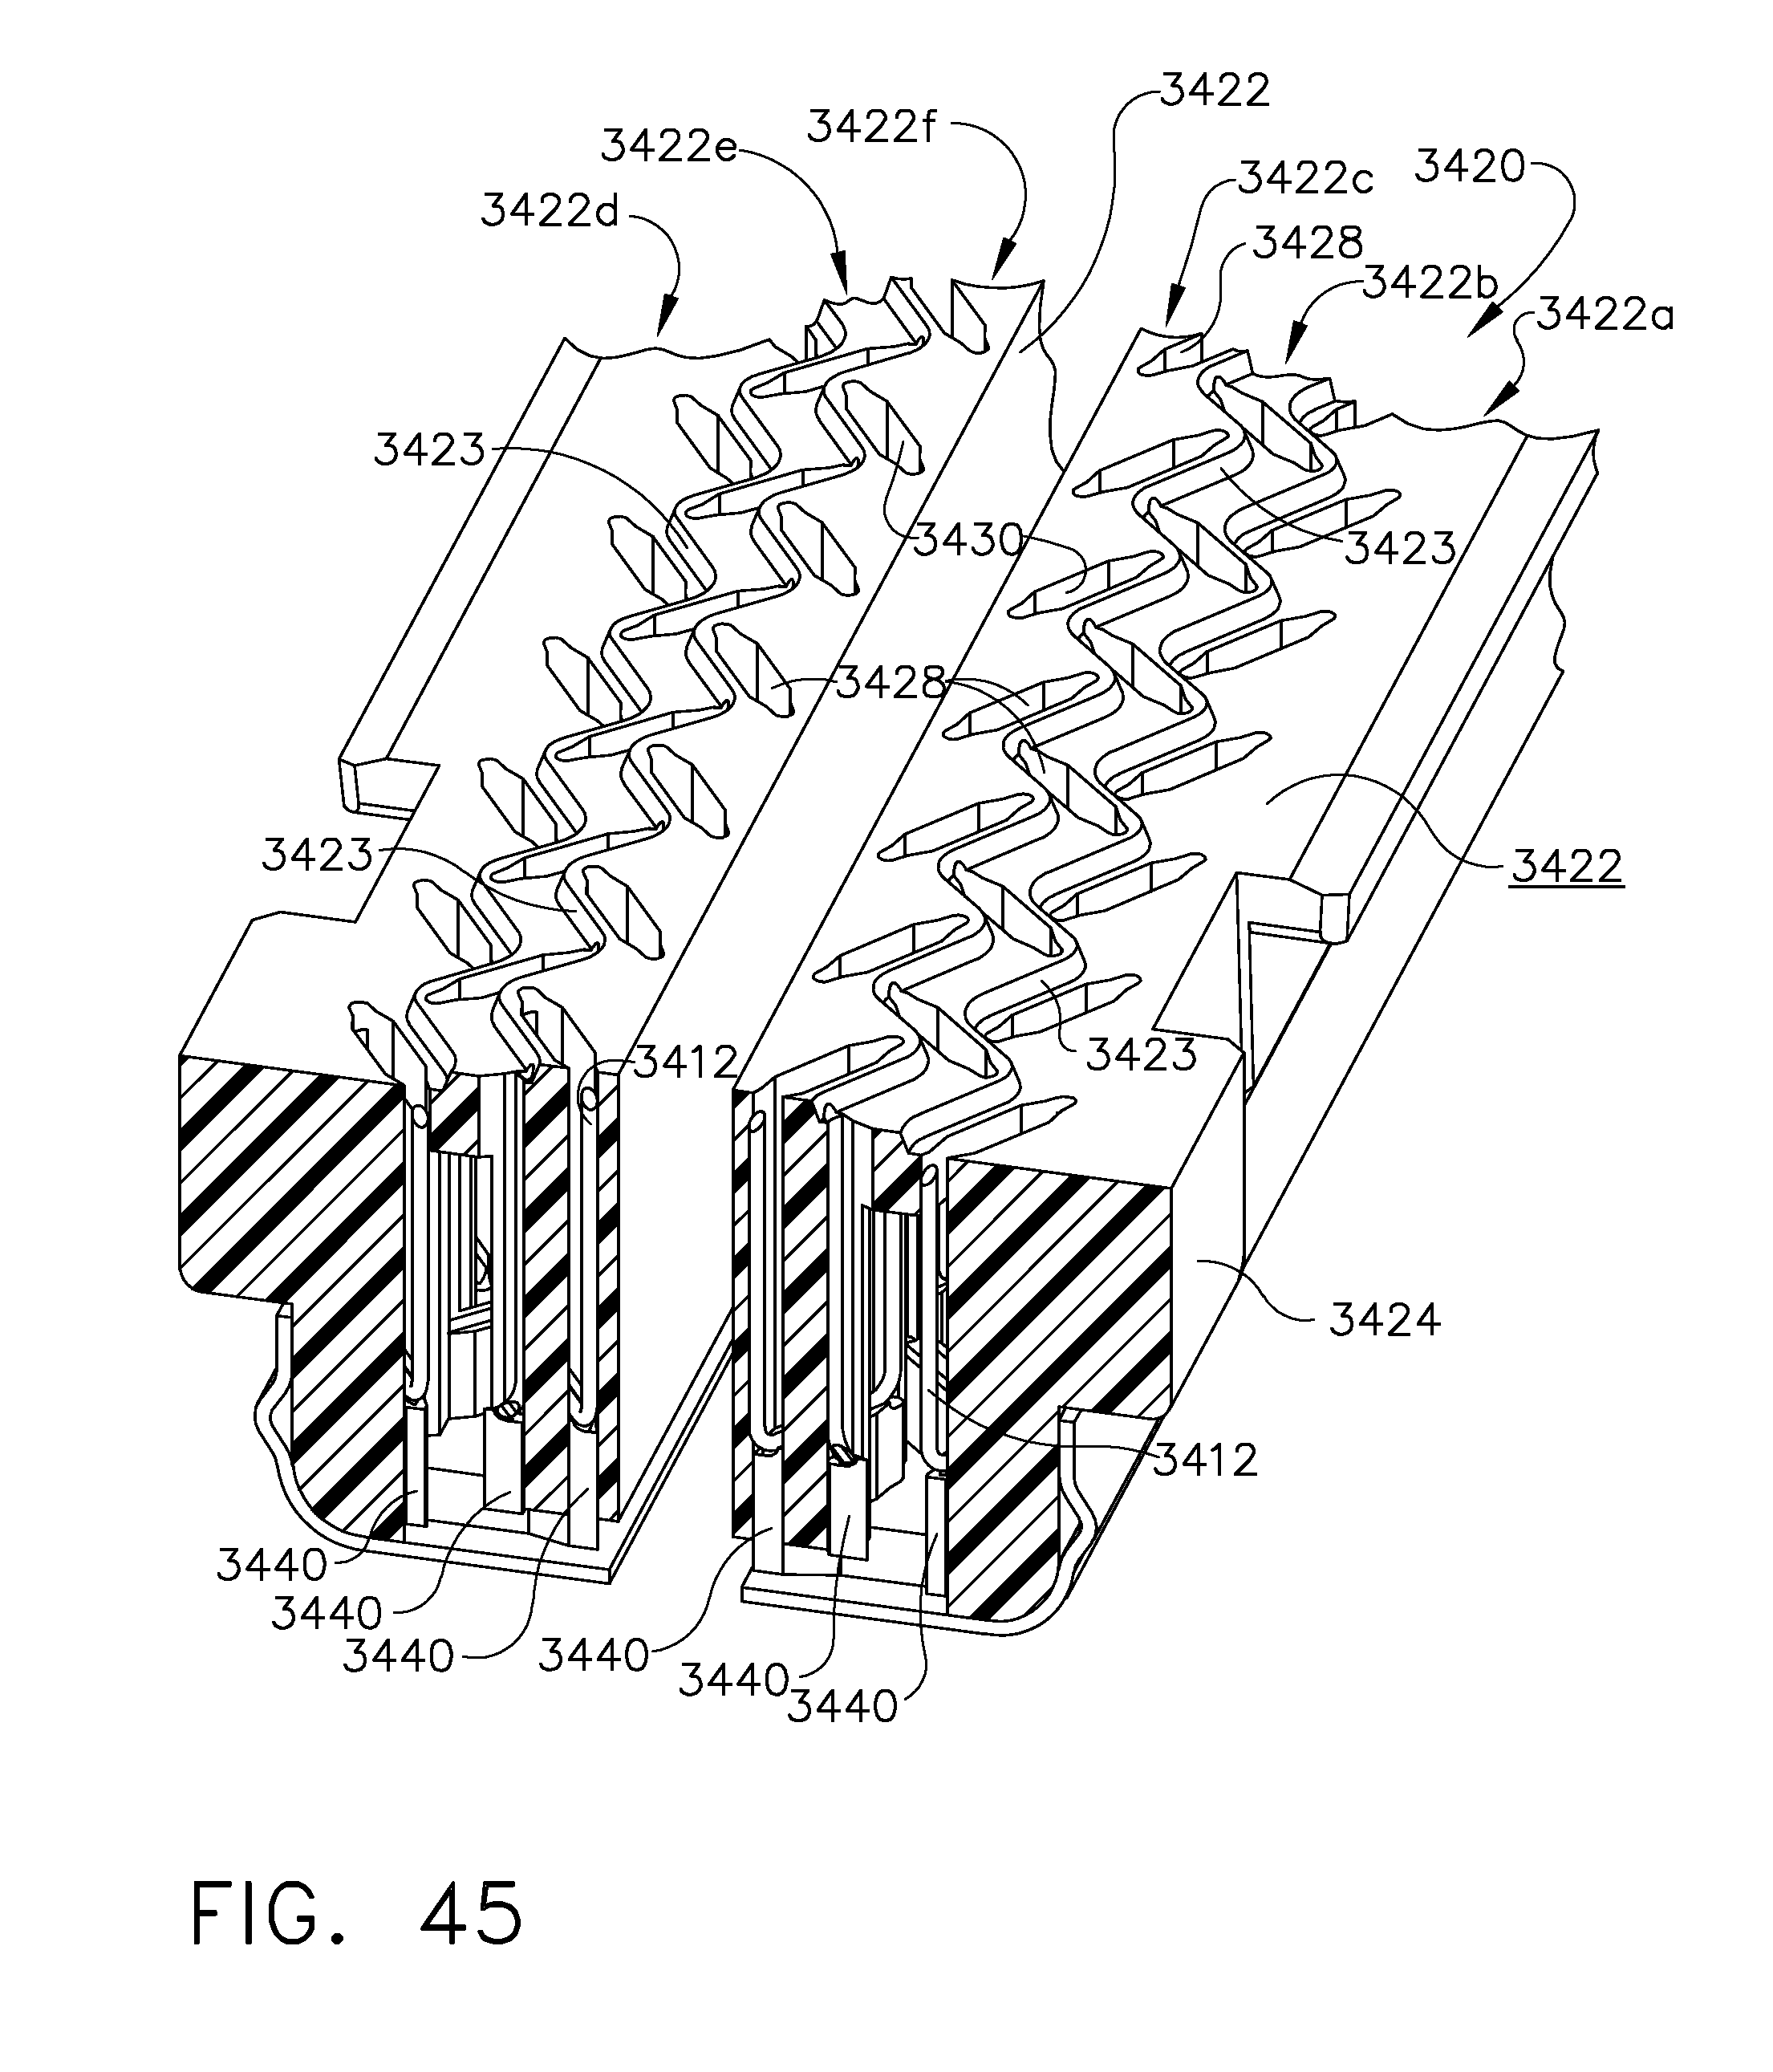 Us20160089146a1 Circular Fastener Cartridges For Applying Radially Electric Gate Motor Wiring Furthermore Diagram Apollo Expandable Lines Google Patents